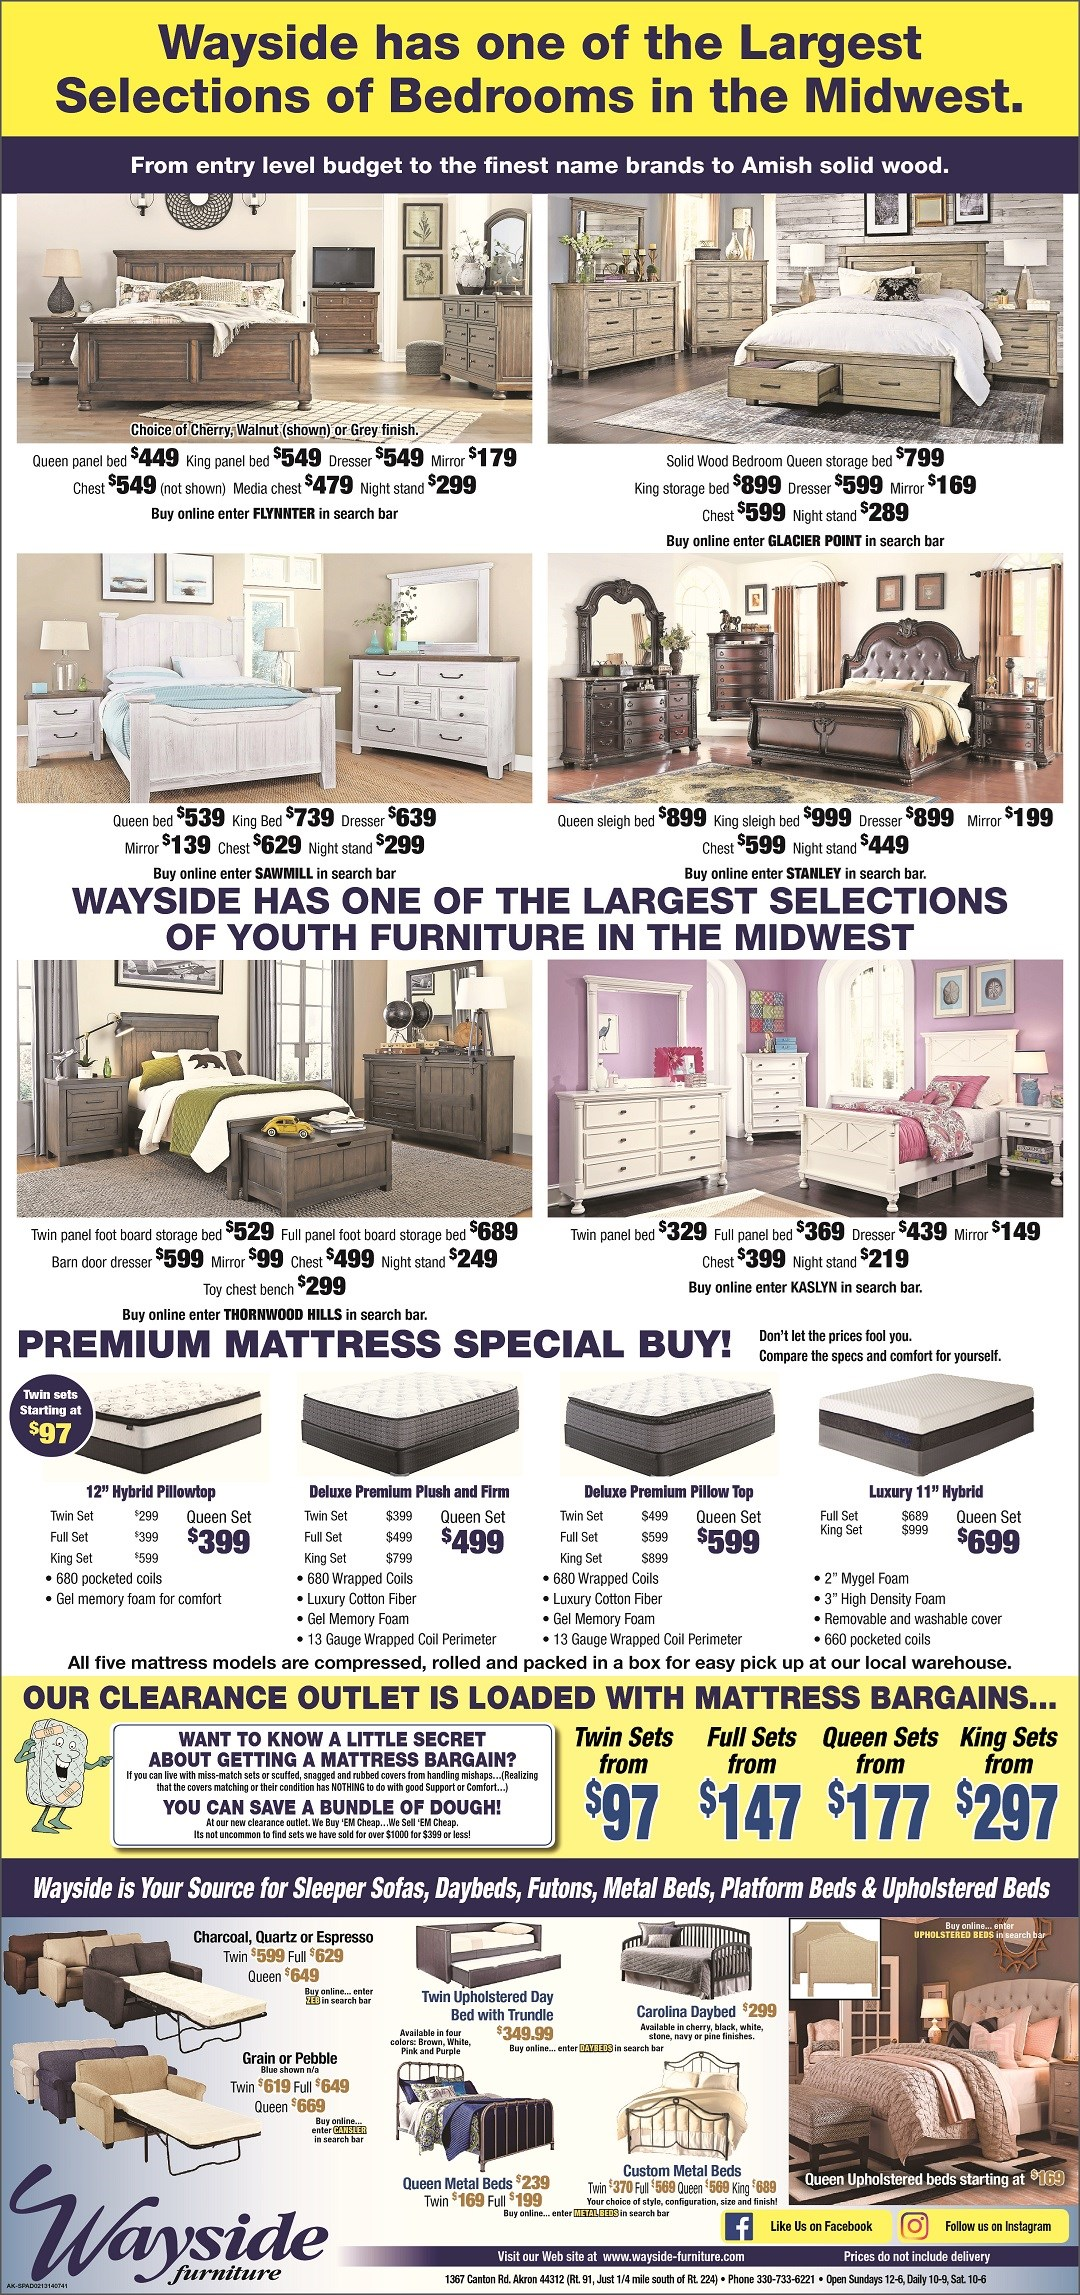 bedroom sets, master bedroom, beds, queen beds, king beds, mattresses, sleeper sofa, daybed, metal bed, upholstered beds, youth bedroom